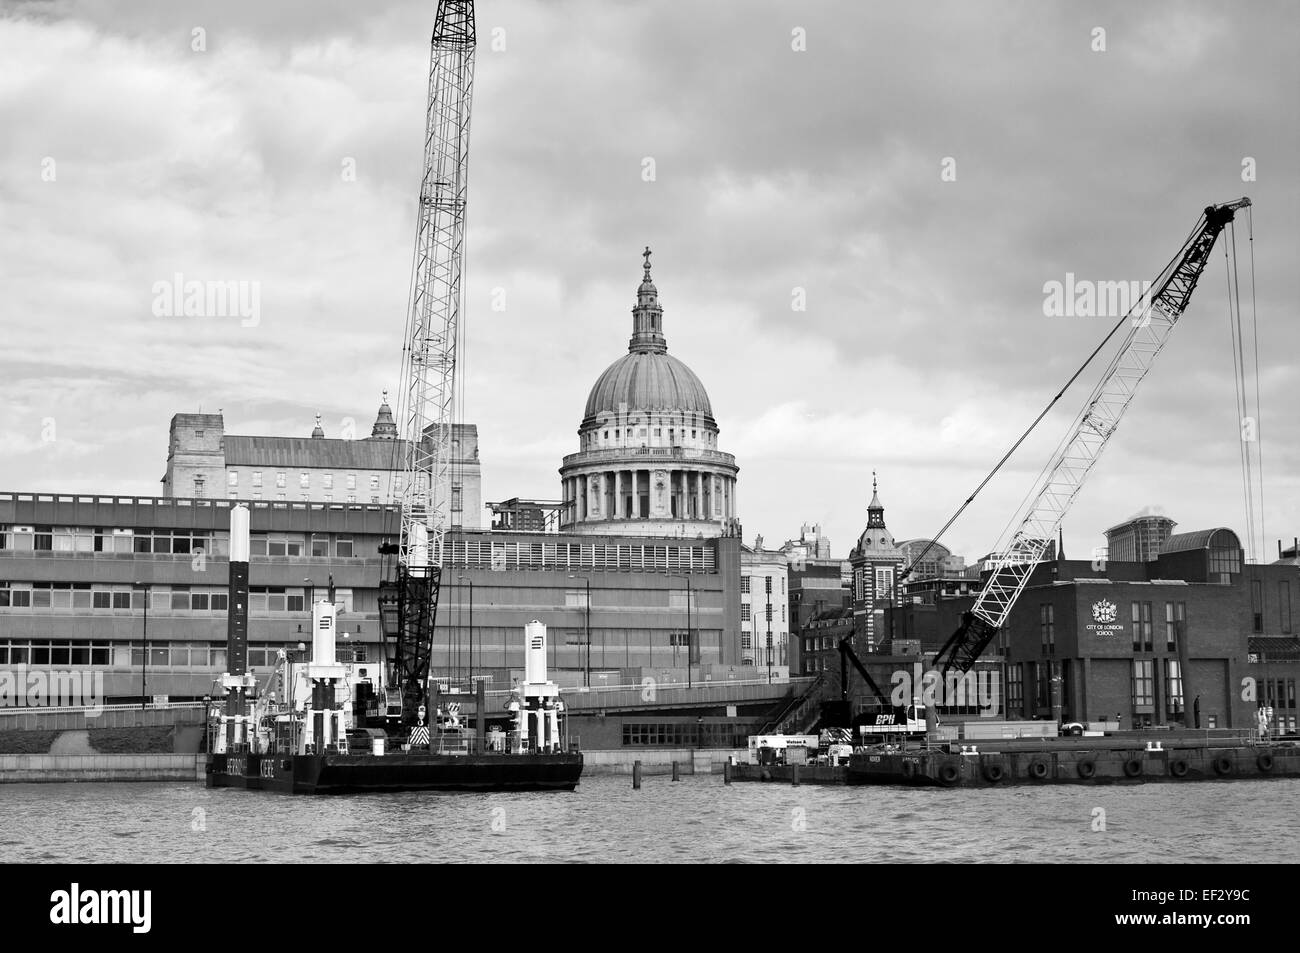 Black and white view of St Paul's Cathedral framed by two floating cranes, seen from the River Thames, London, England Stock Photo